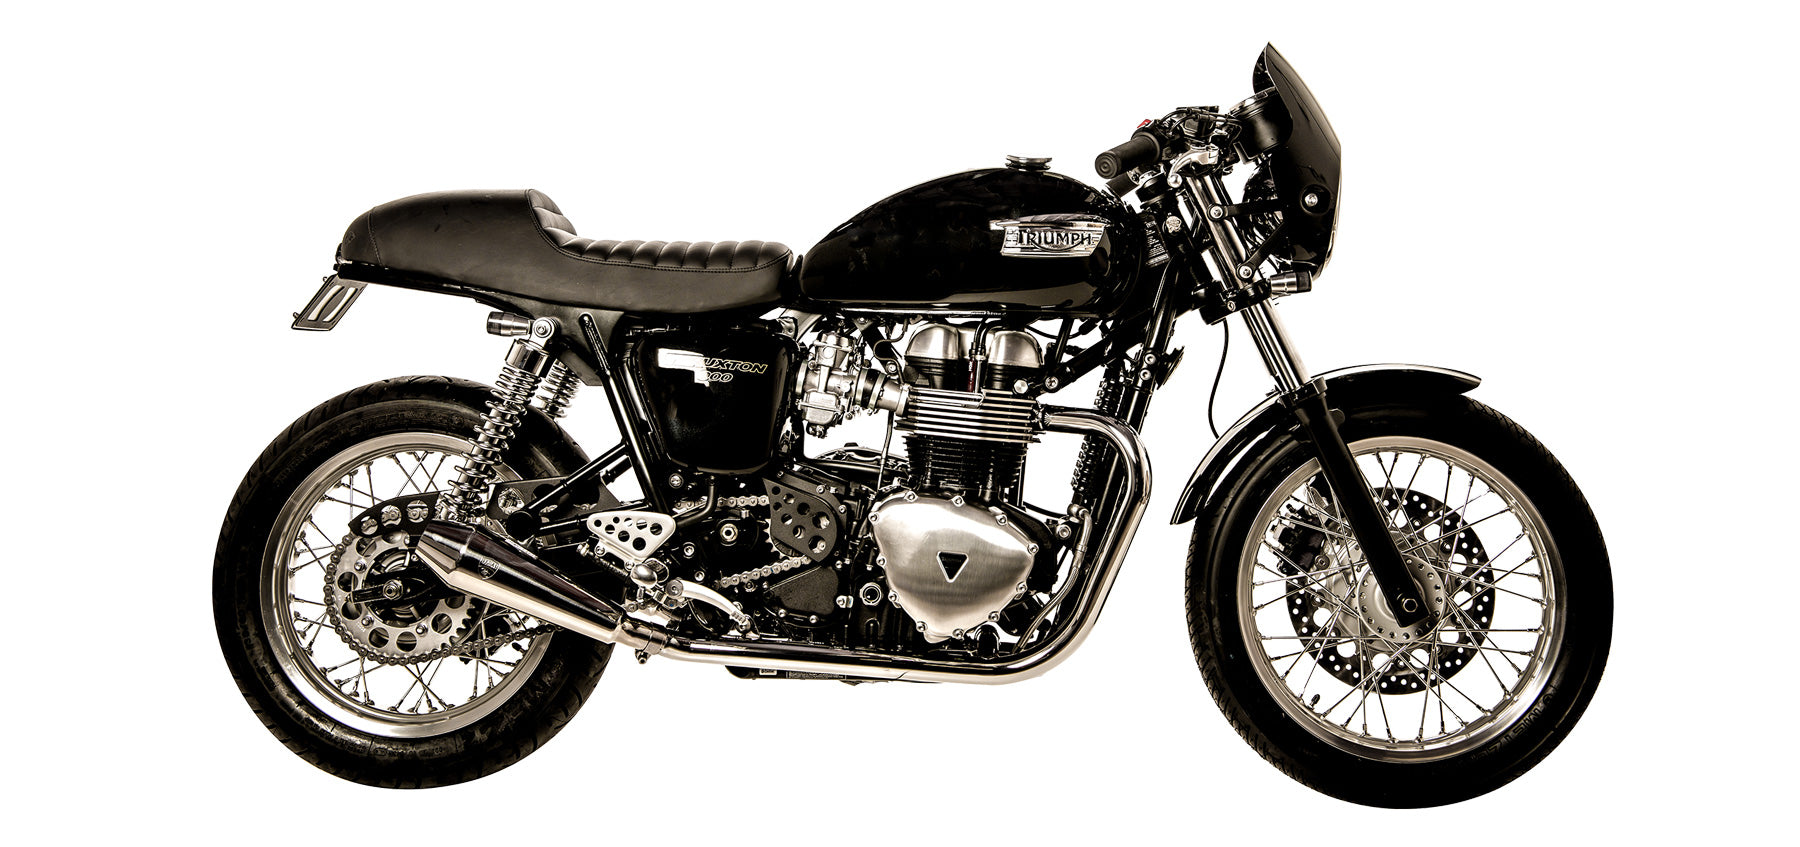 British Customs Shorty Predator Pro Exhaust for Thruxton 900